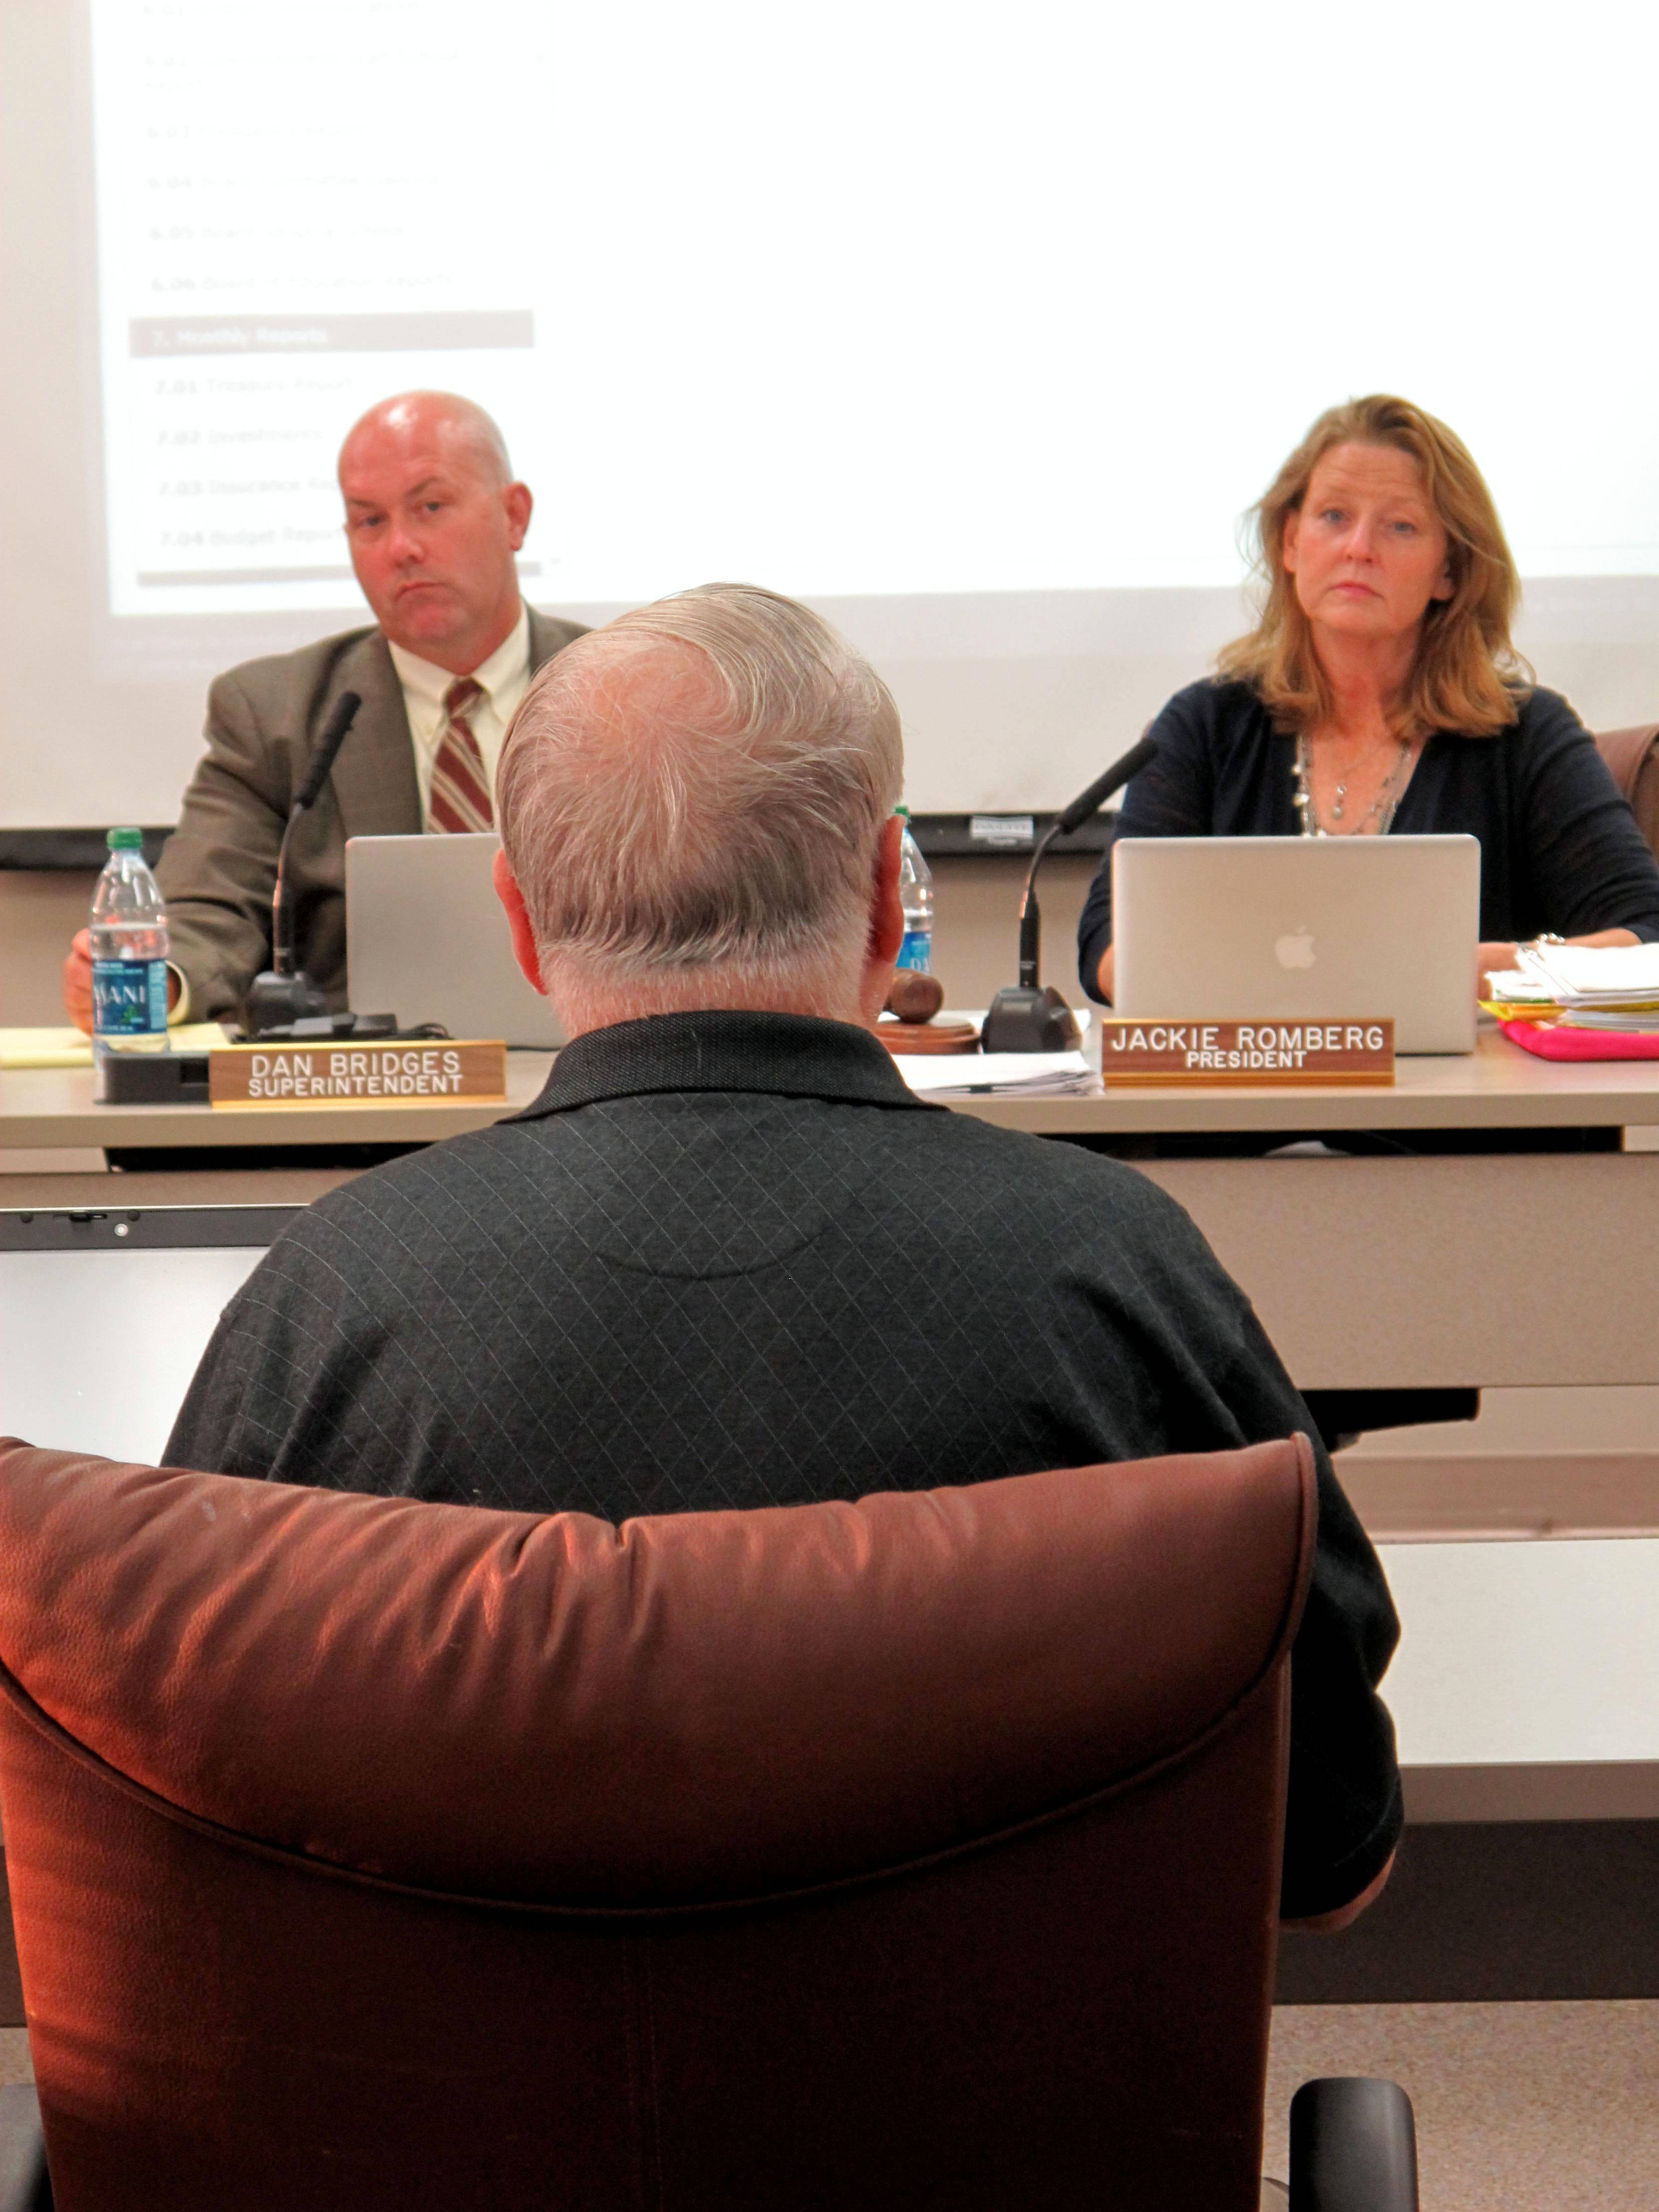 Naperville Unit District 203 Superintendent Dan Bridges and school board President Jackie Romberg said a proposal to install cellphone towers at two junior high schools is off the table.